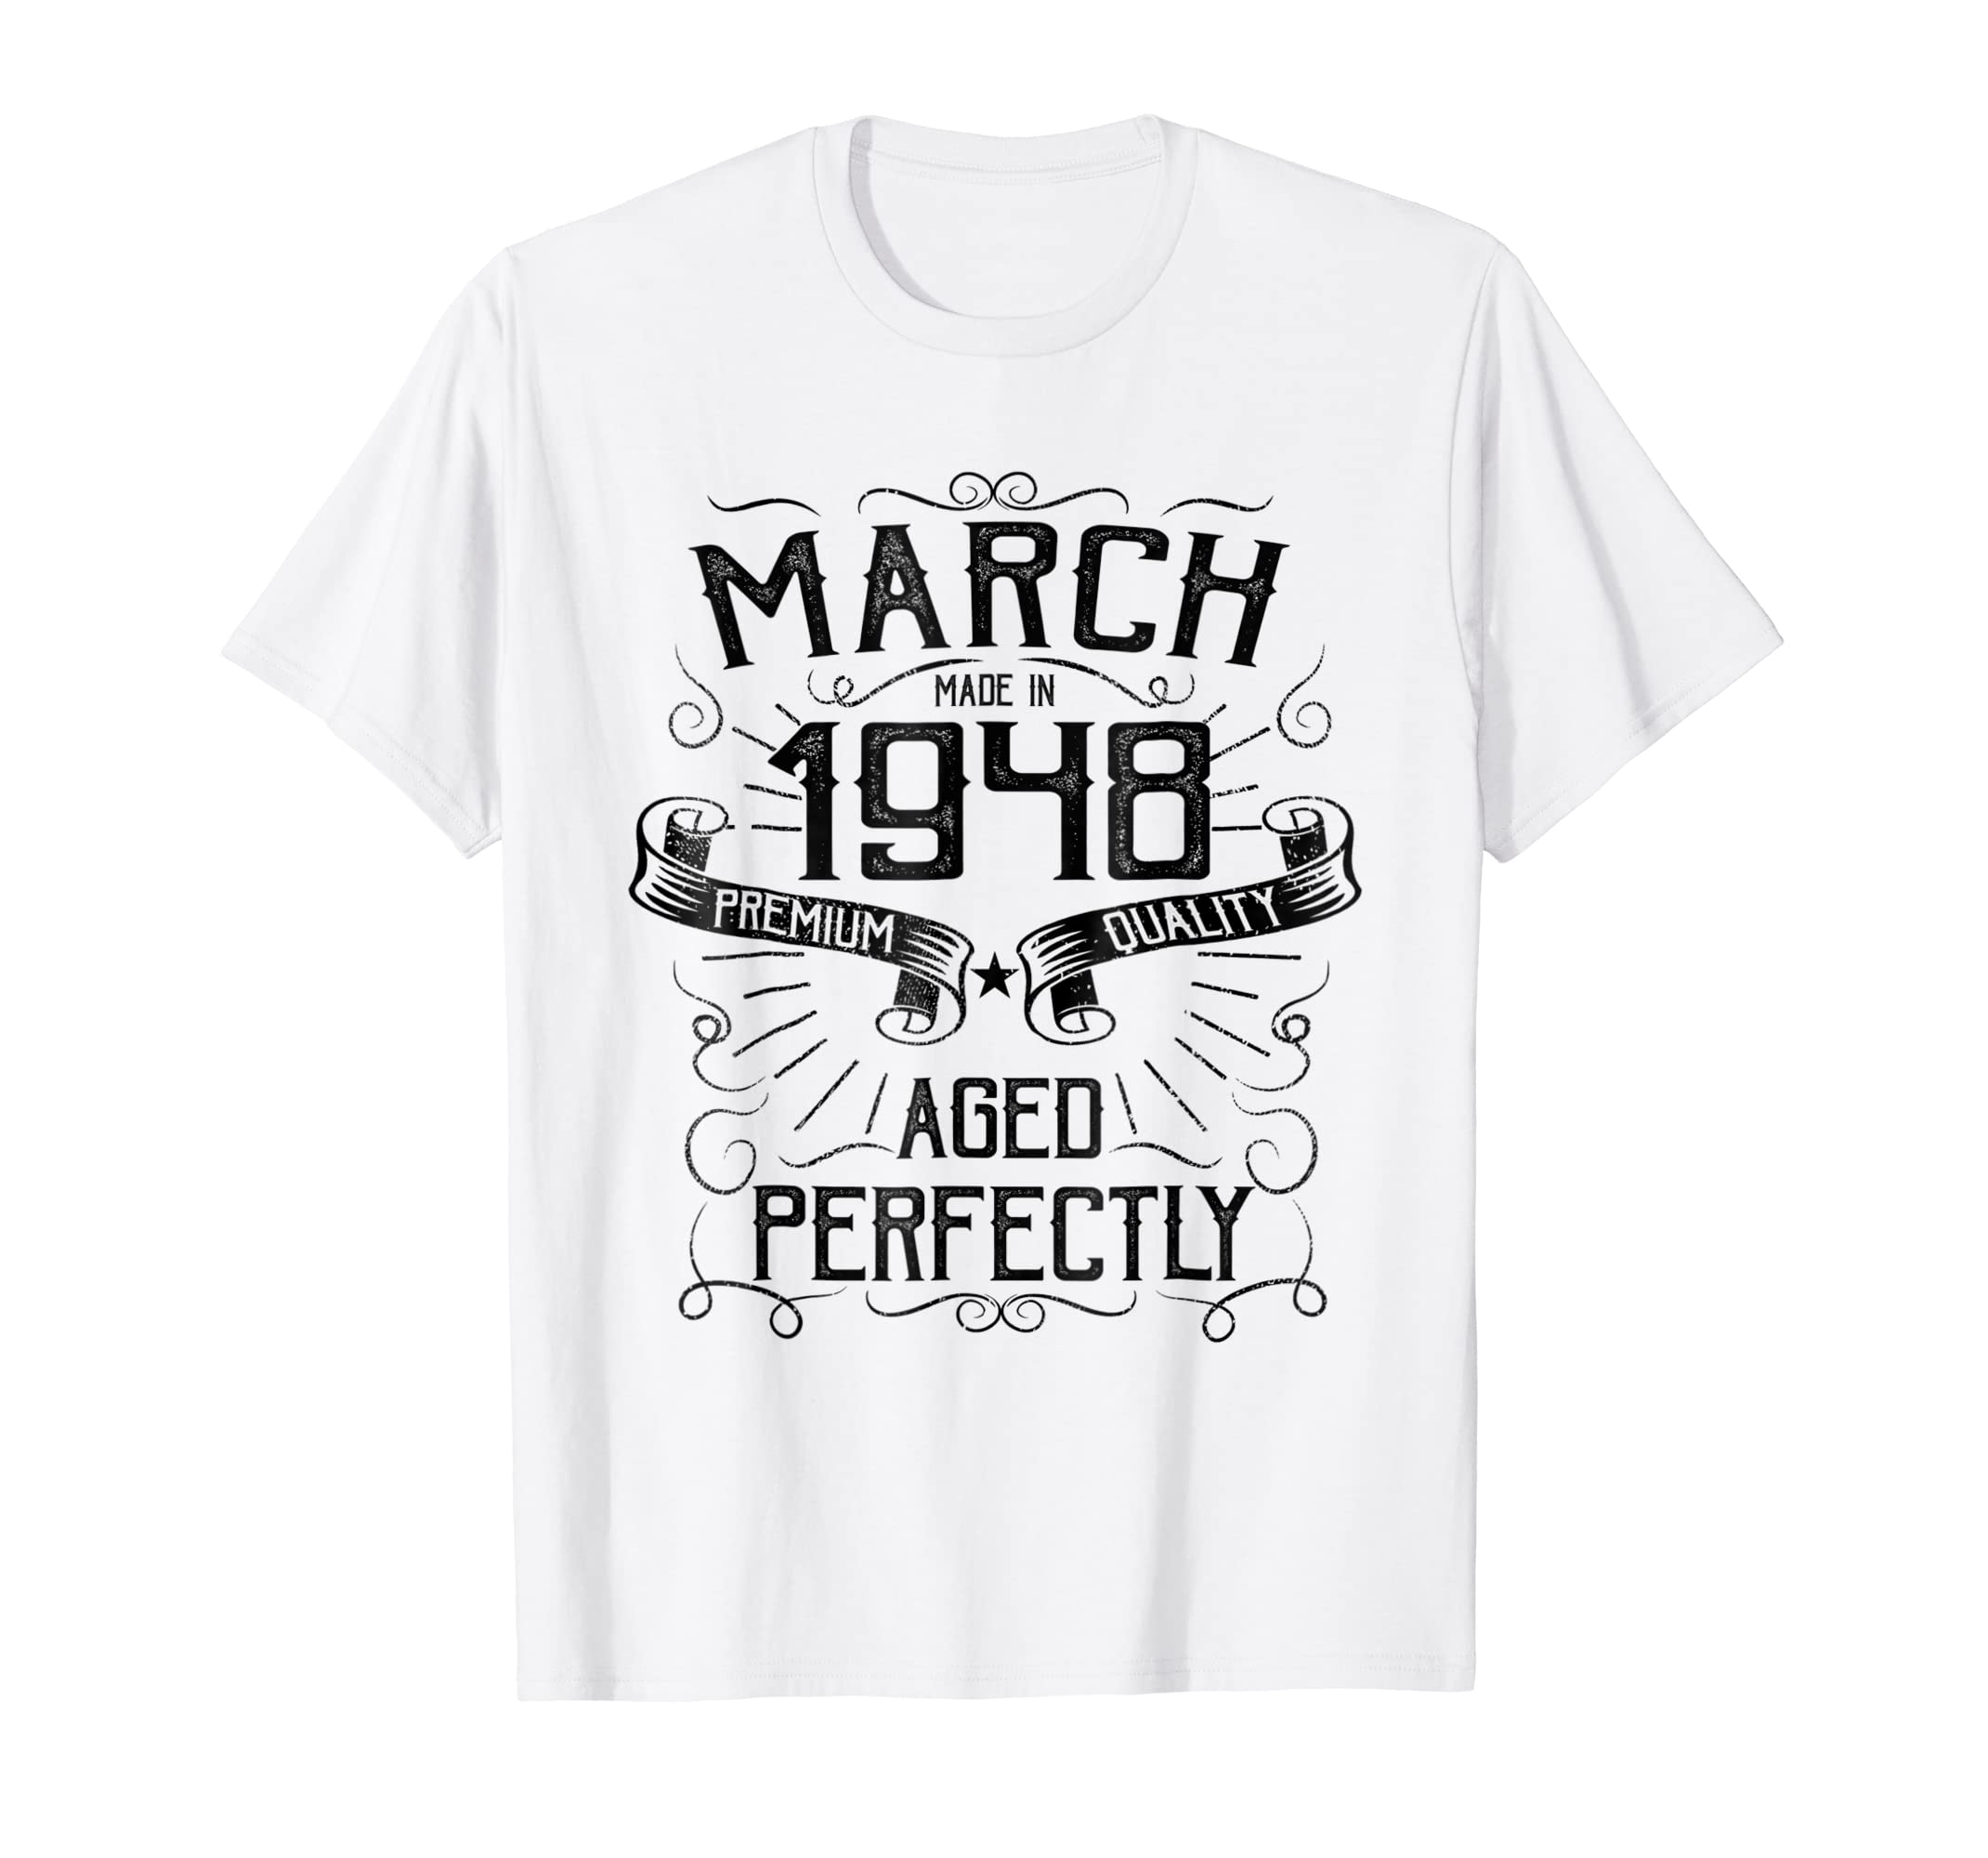 12c3c173a39d Amazon.com  Vintage March Made in 1948 T-Shirt 70th Birthday Gift Tee   Clothing